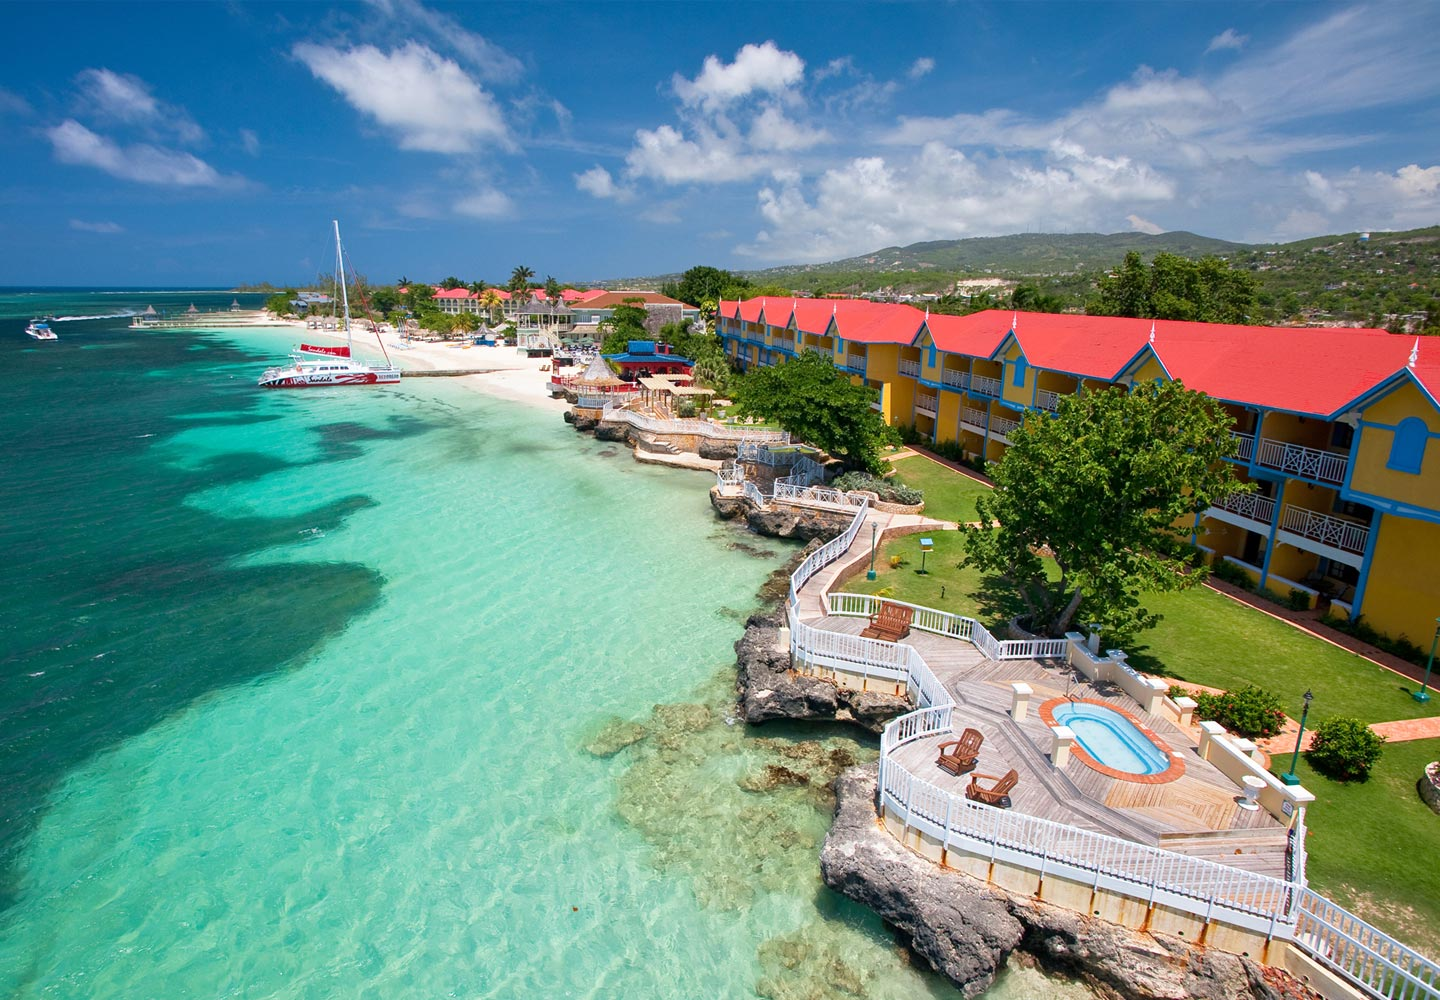 Travel Agency All-Inclusive Resort Sandals Montego Bay 036